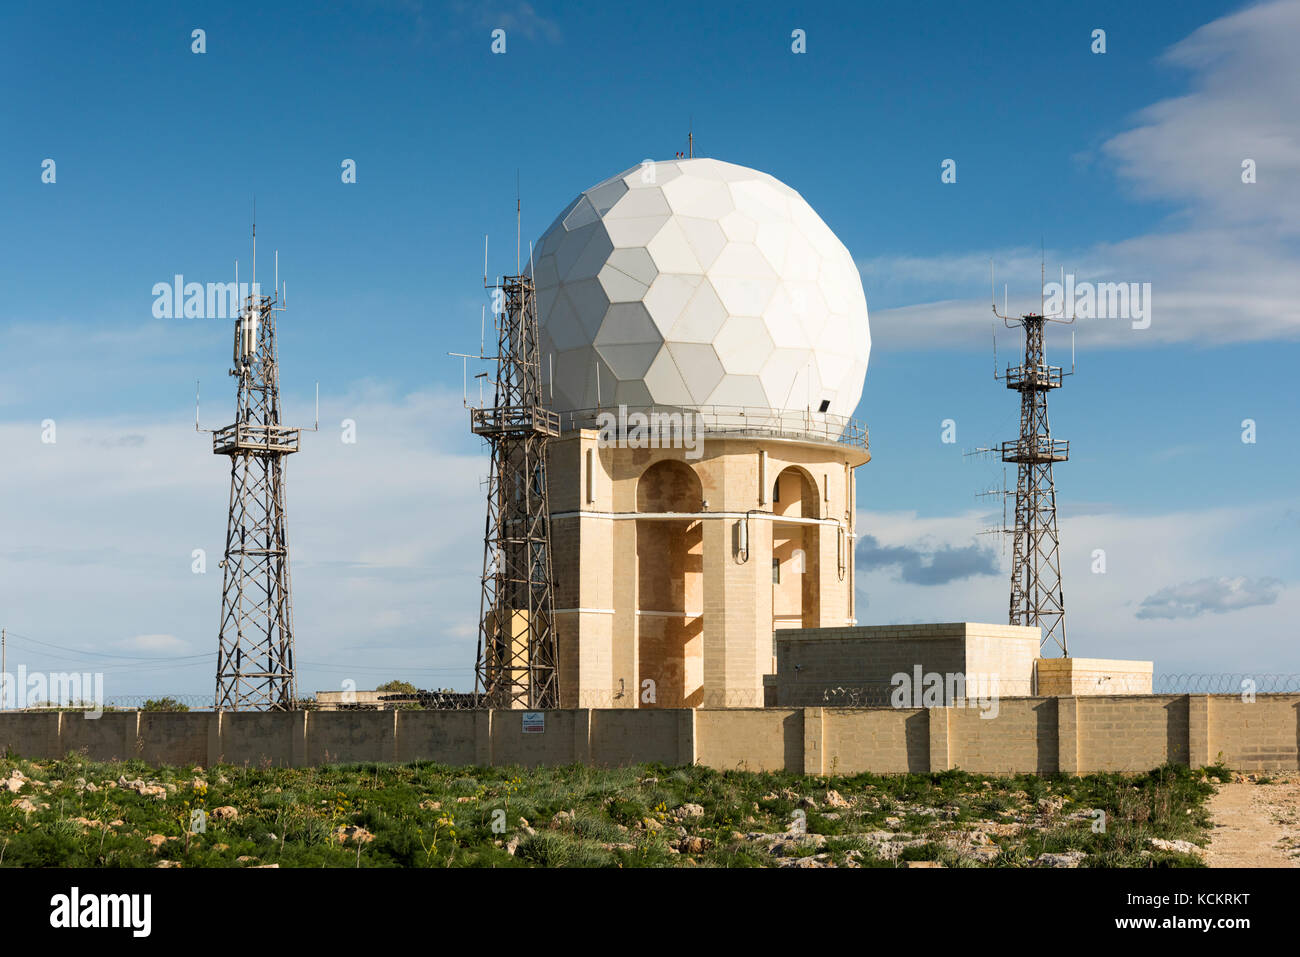 Dingli Radar dome at Dingli Cliffs Malta, part of the Maltese air traffic control system - Stock Image